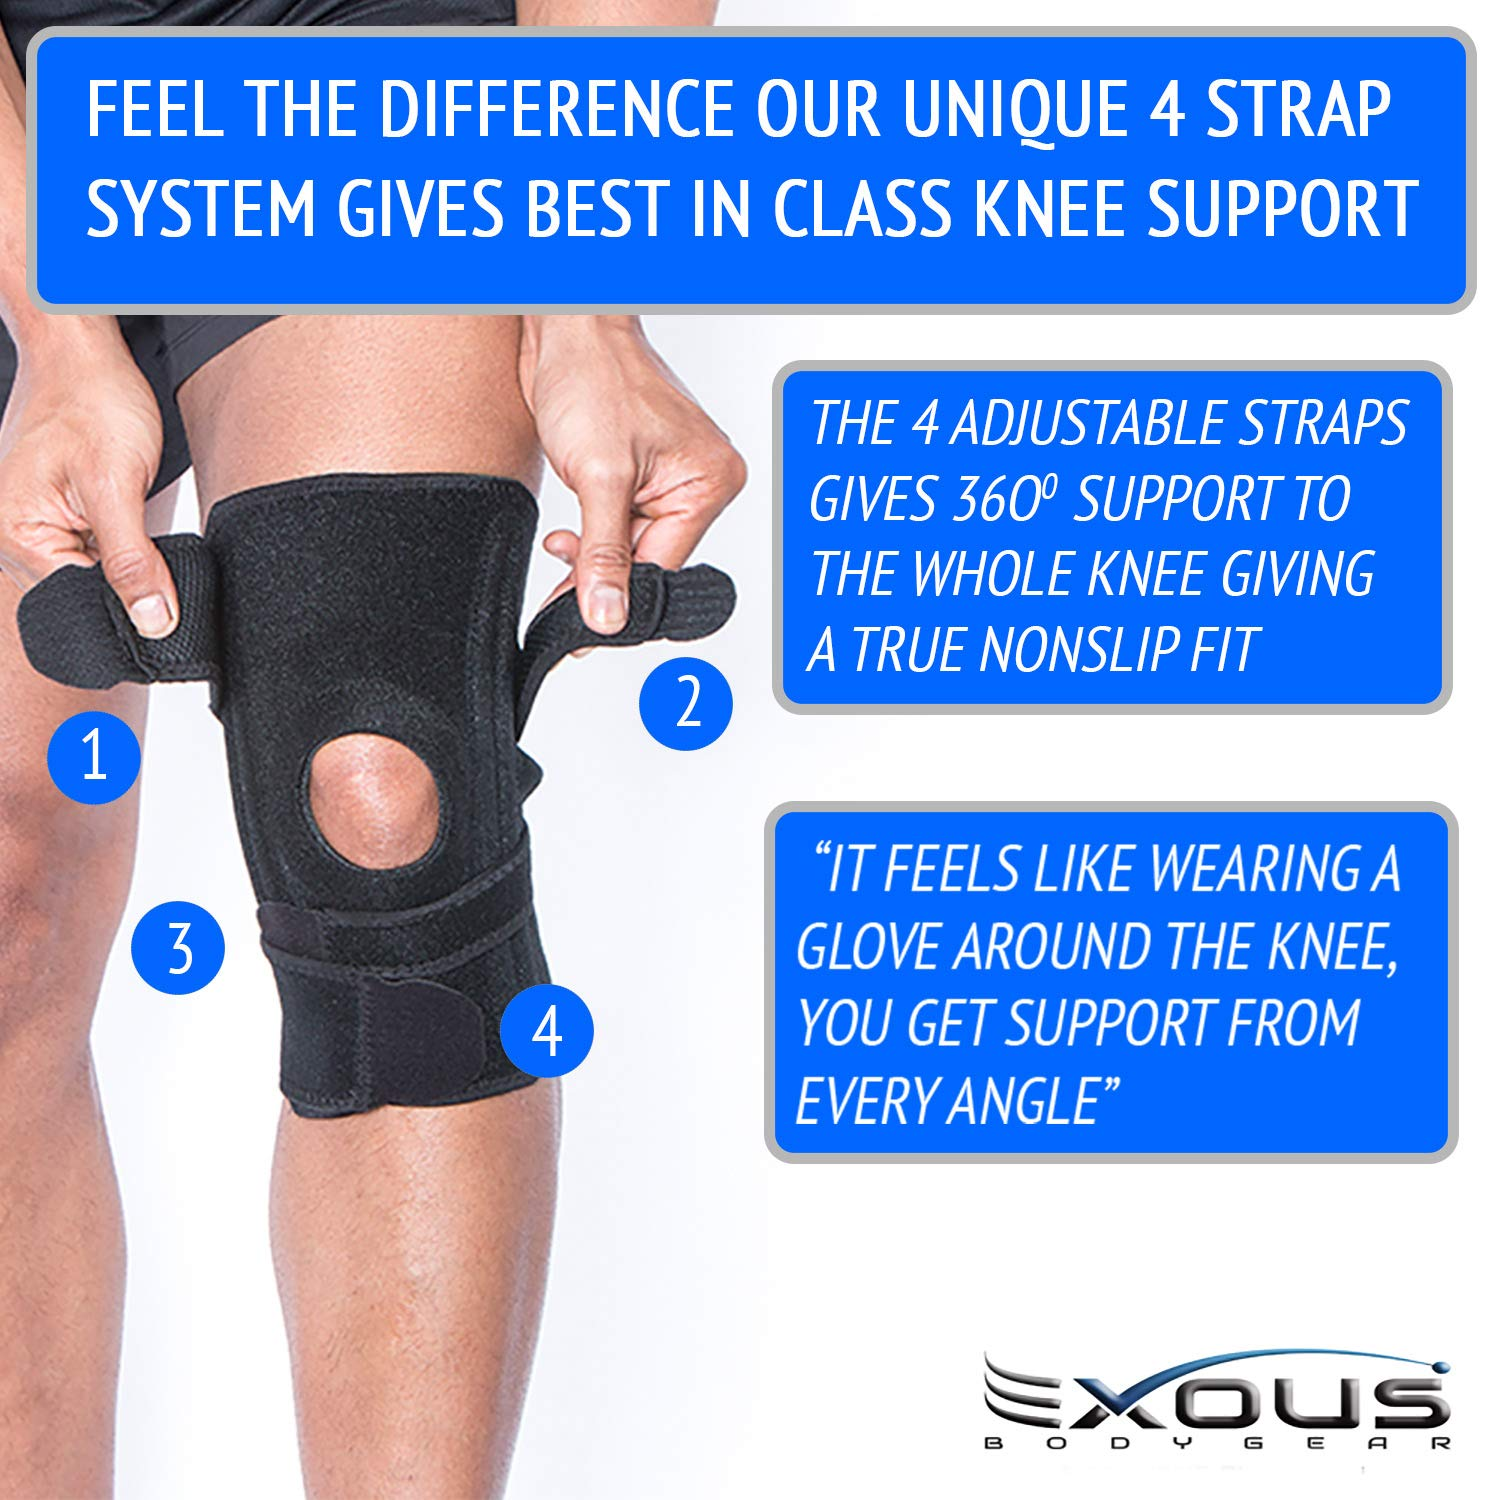 fc876fba5e Amazon.com: EXOUS Knee Brace Support Protector - Relieves Patella  Tendonitis - Jumpers Knee Mensicus Tear - ACL Lateral & Medial Ligament  Sprains Comfort ...